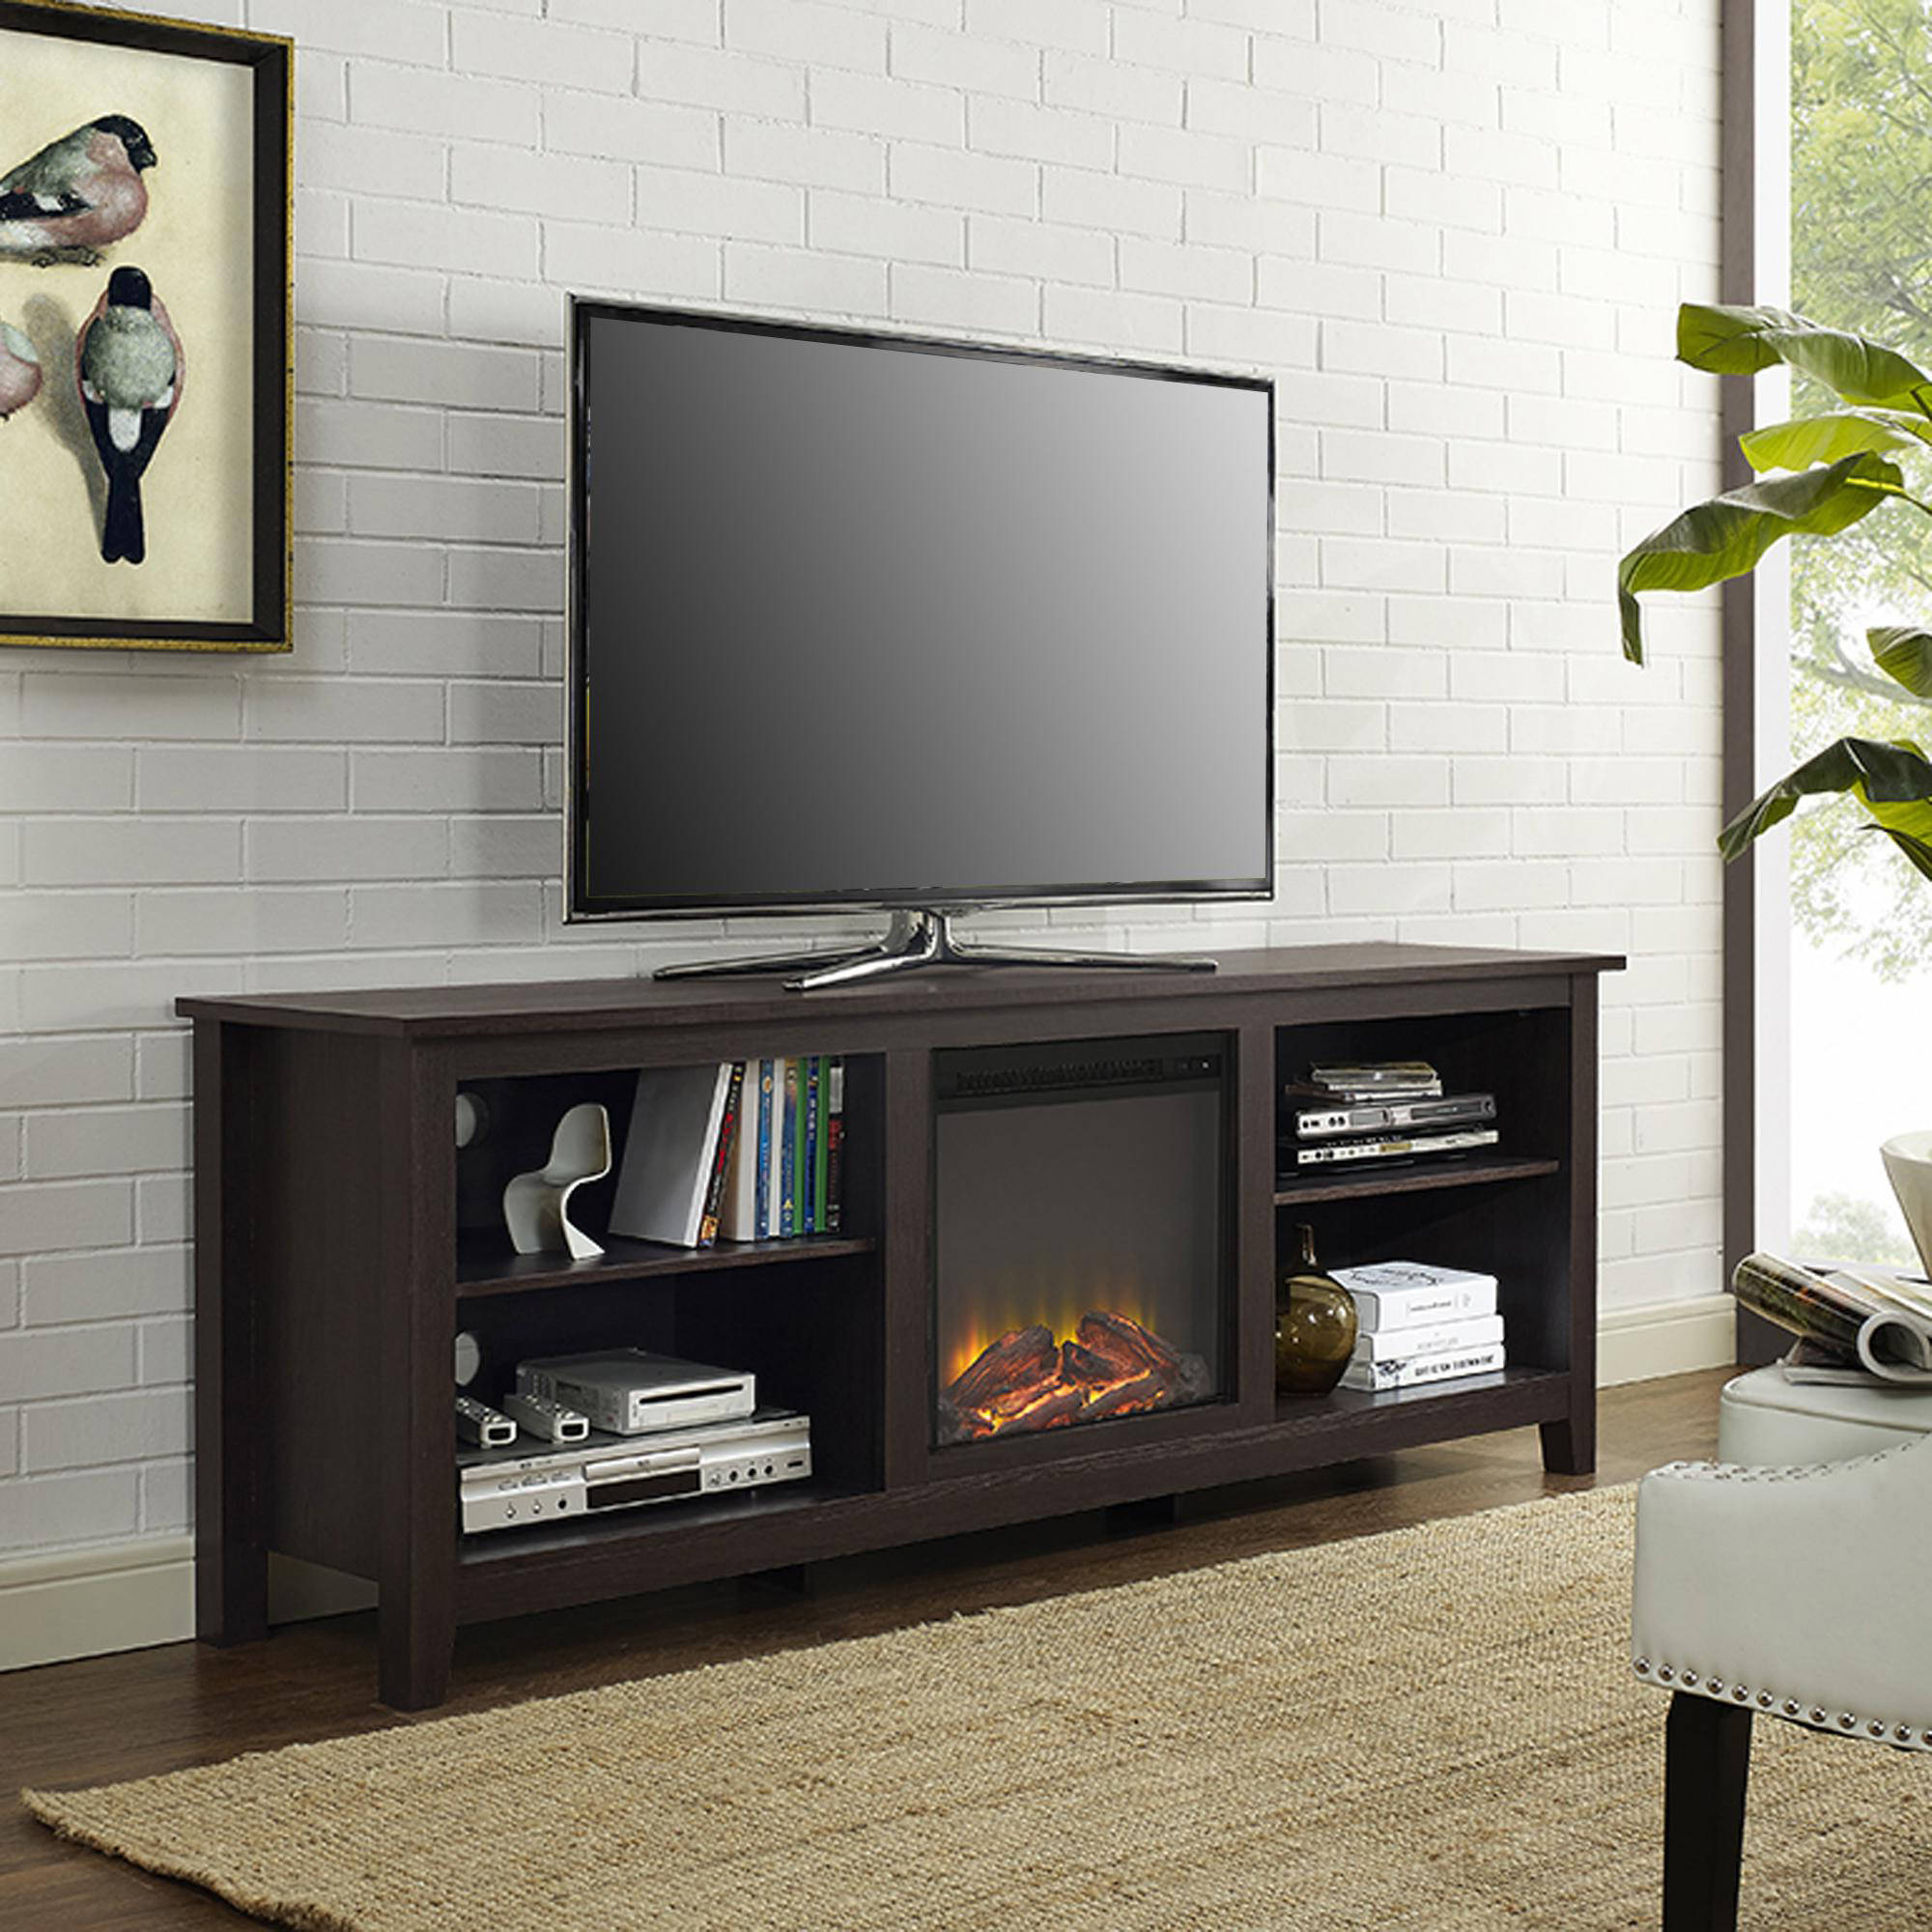 Tv Stands & Entertainment Centers – Walmart For Popular Cheap Tv Table Stands (View 17 of 20)